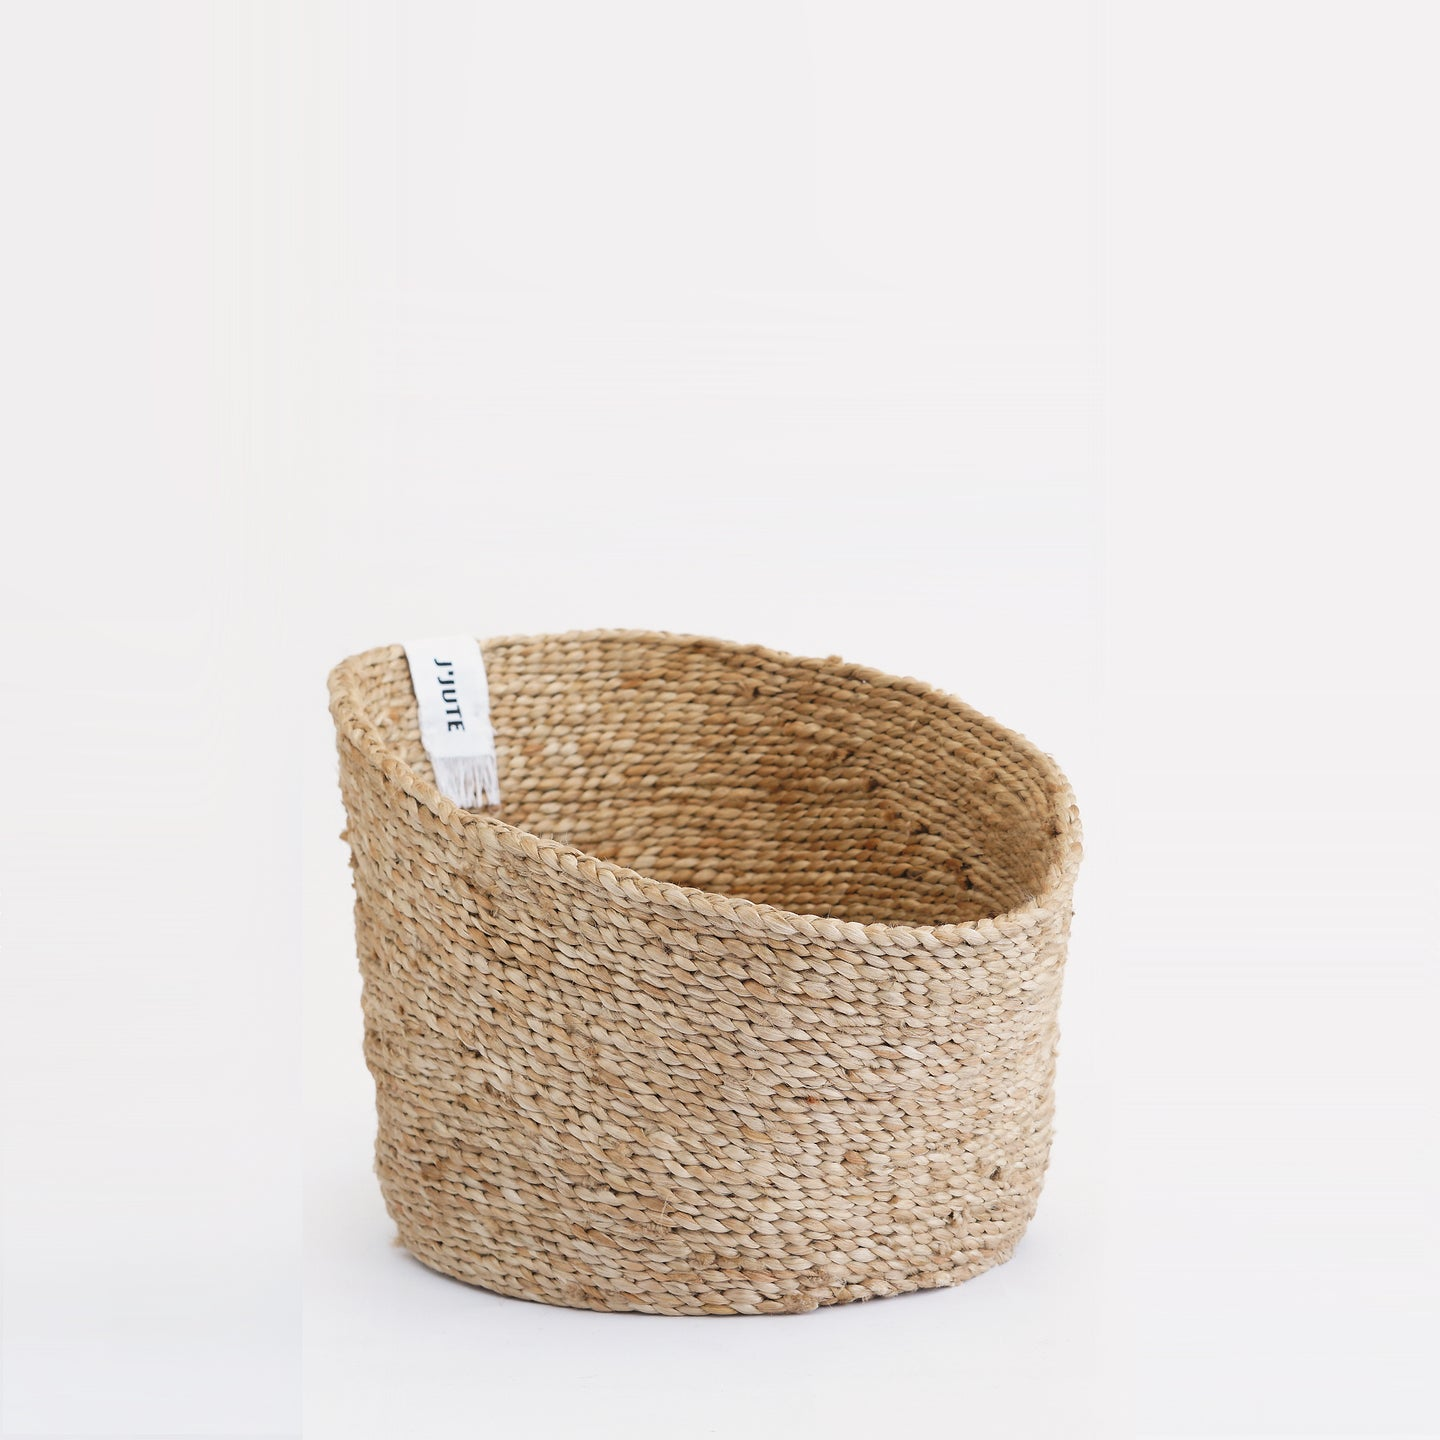 J'JUTE LODI ANGLED TABLE AND FRUIT BASKET